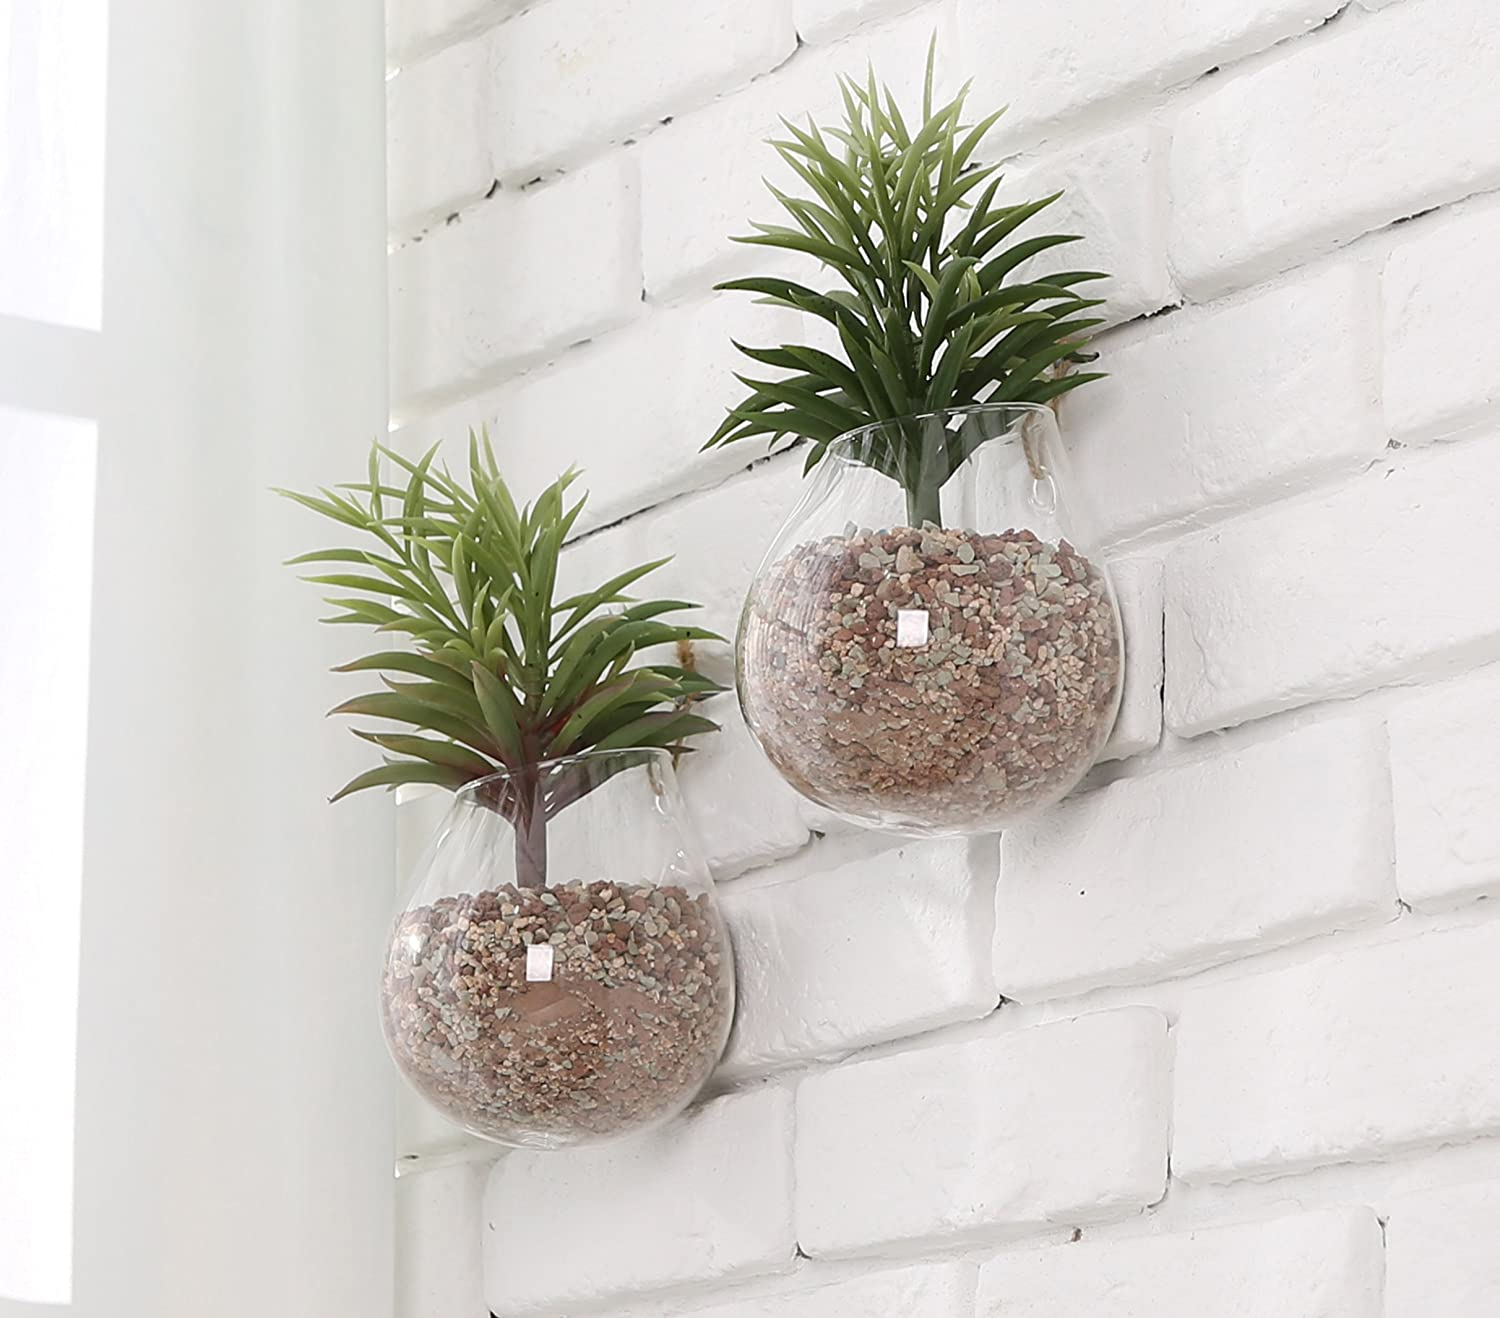 Amazon clear glass wall mounted plant terrariums hanging amazon clear glass wall mounted plant terrariums hanging display planter vases pots decor set of 2 garden outdoor reviewsmspy